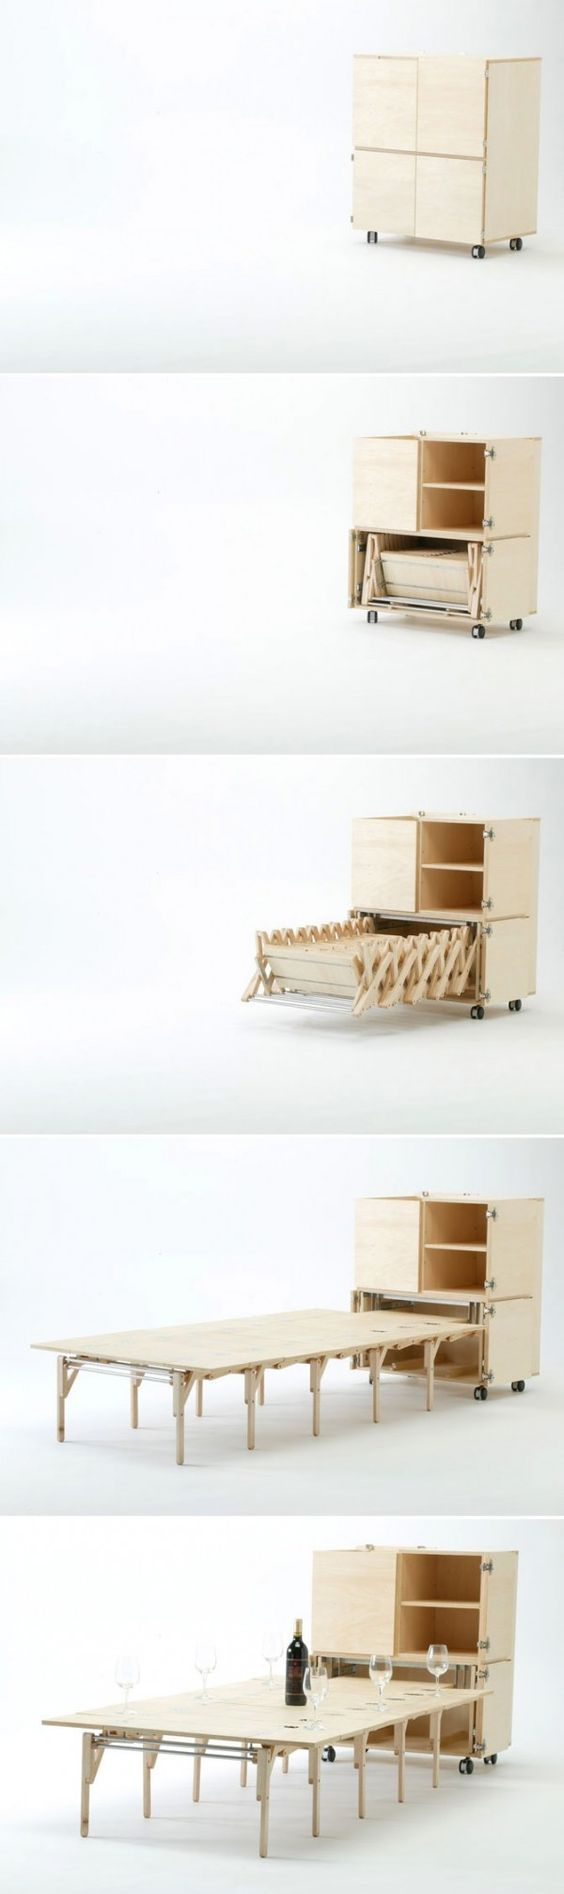 table-manger-extensible-15: